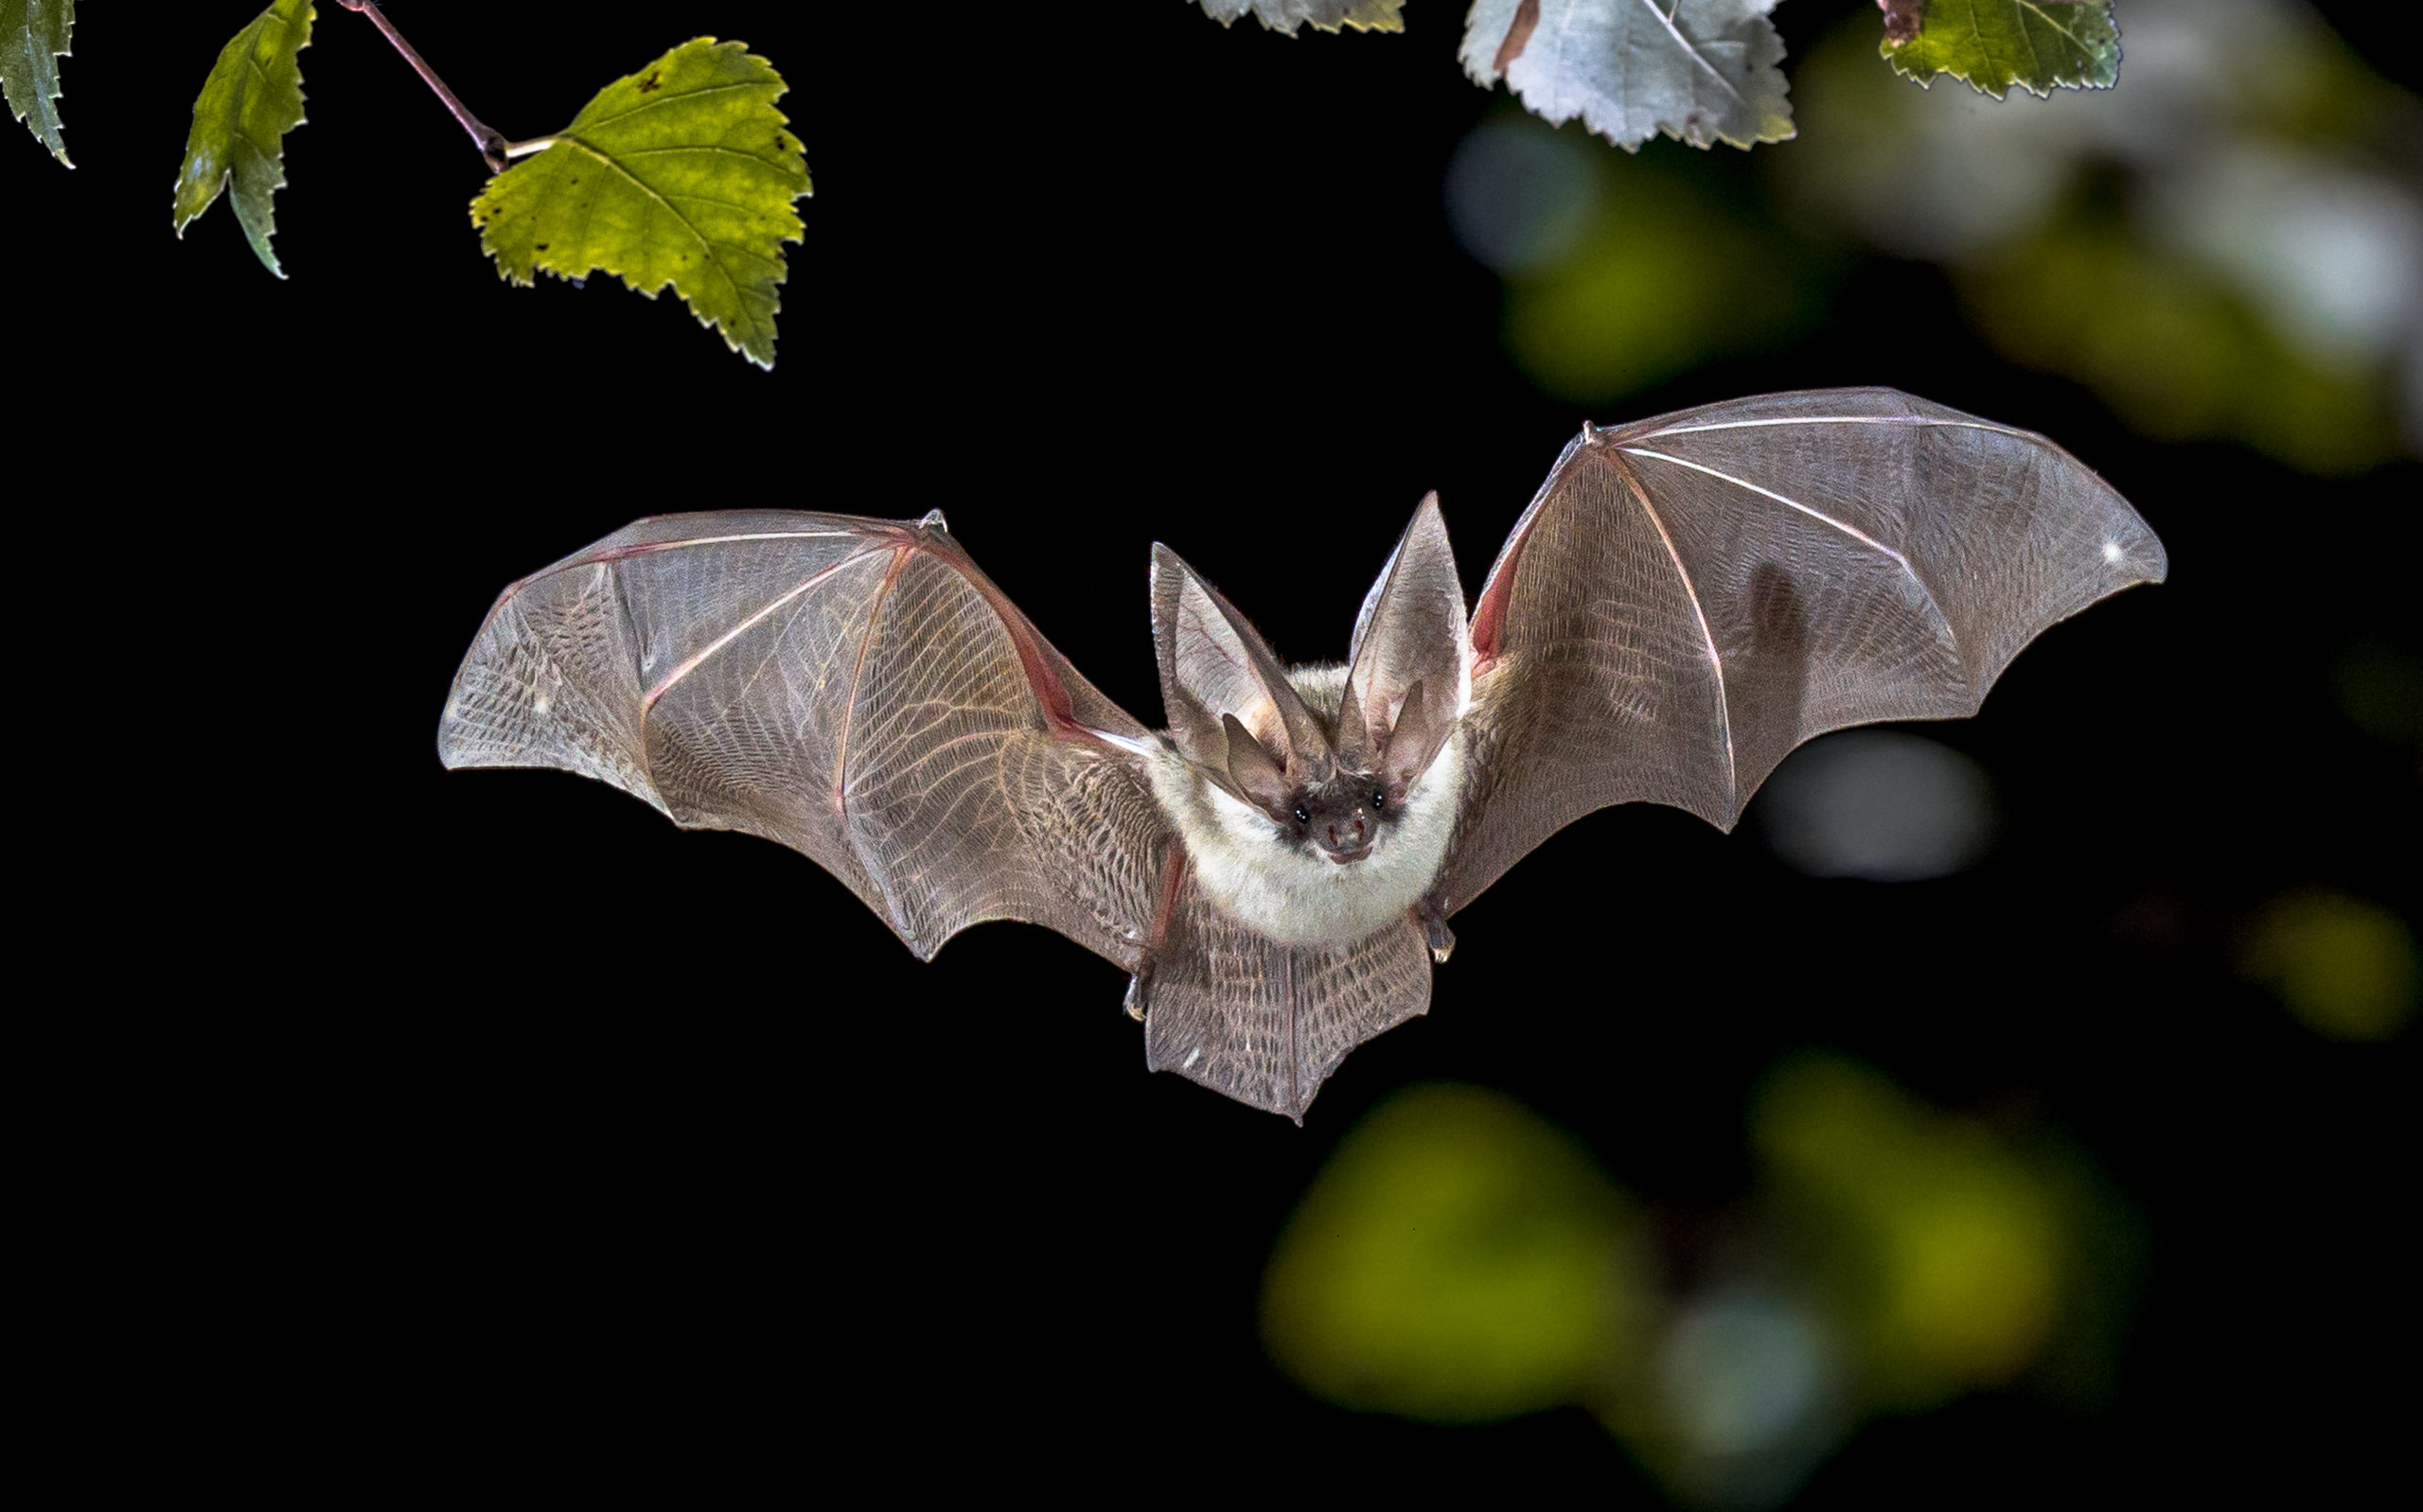 Image of Townsend Big eared bat in forest